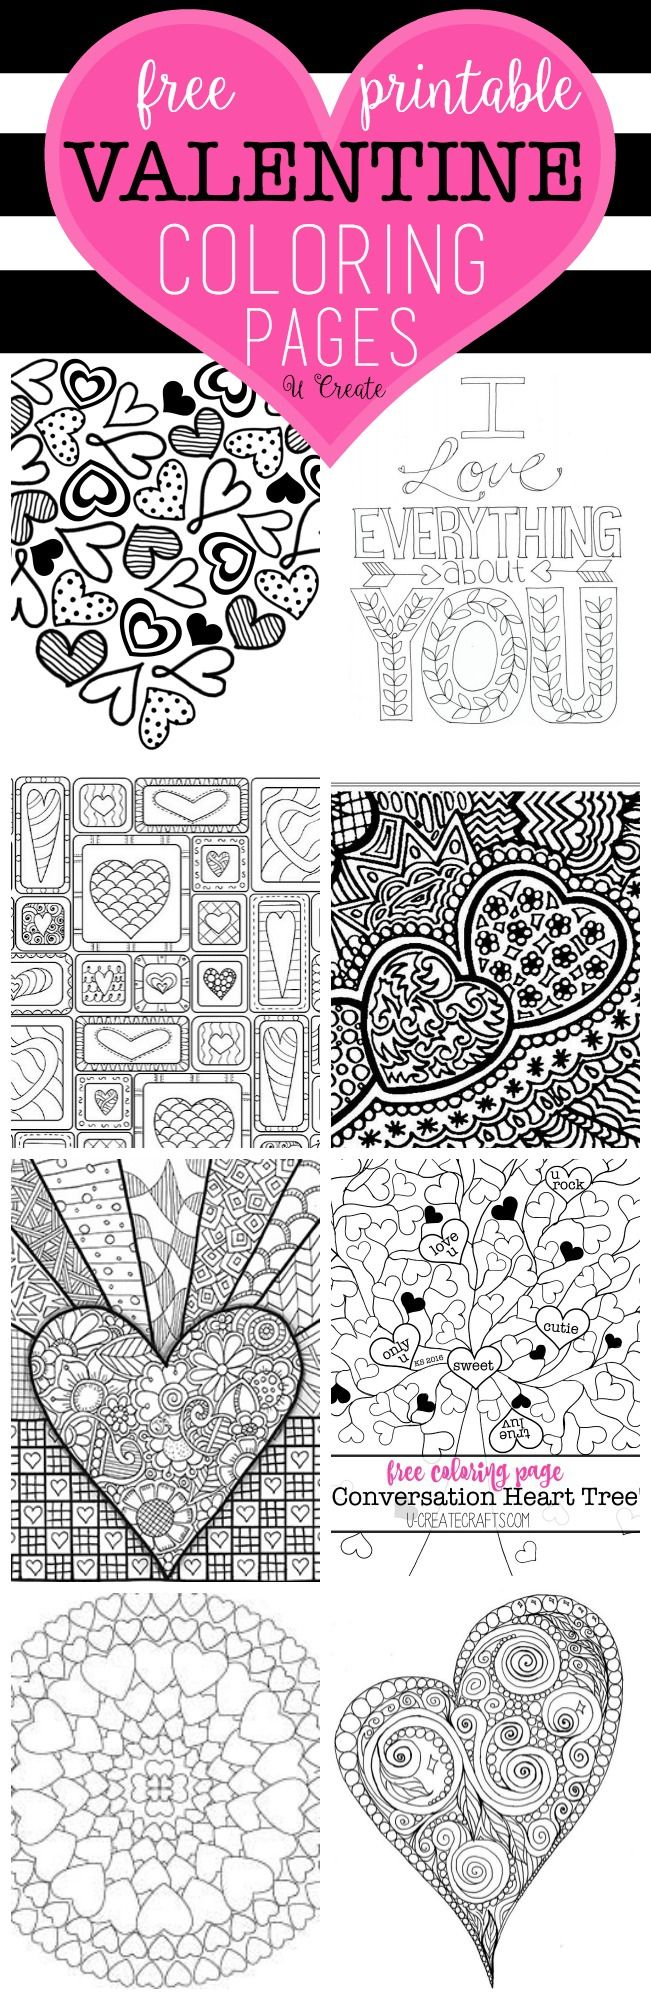 Free printable coloring pages for valentines day - Free Valentine Coloring Pages